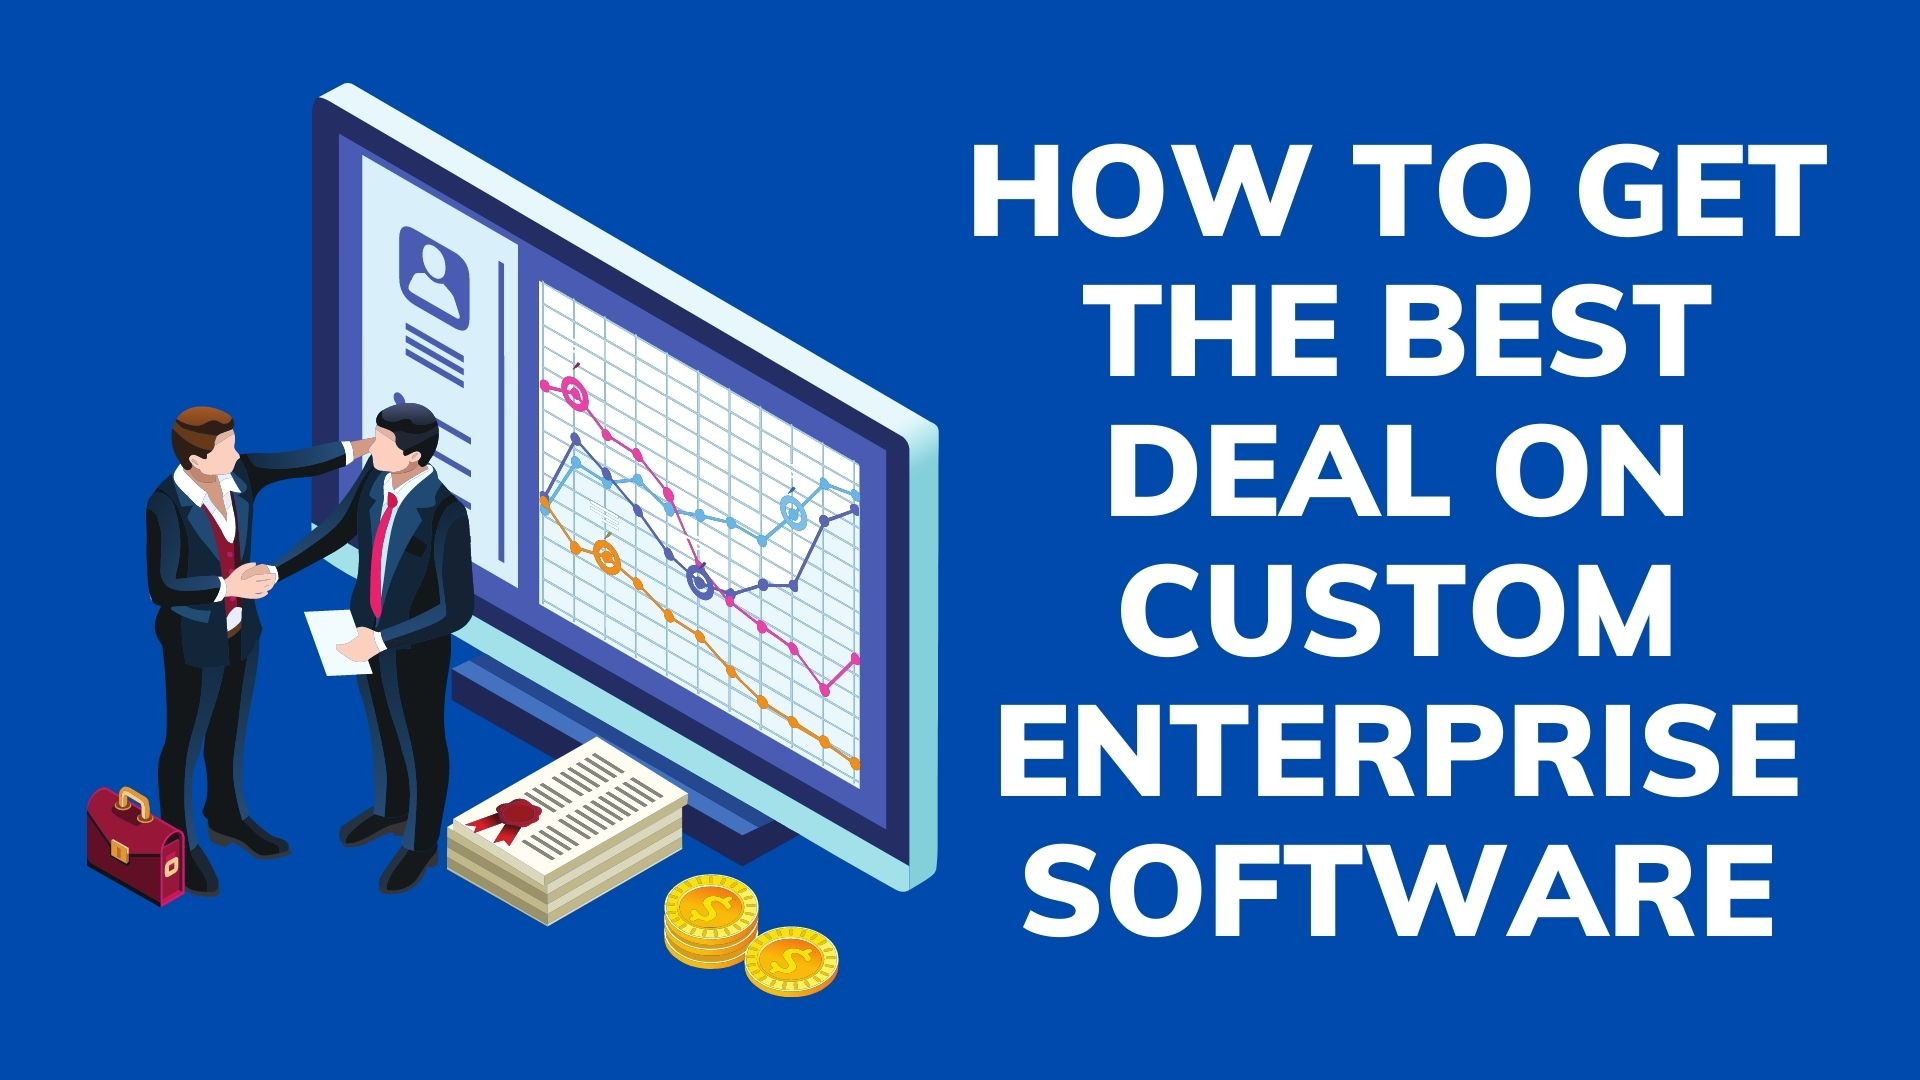 How to Get the Best Deal On Custom Enterprise Software